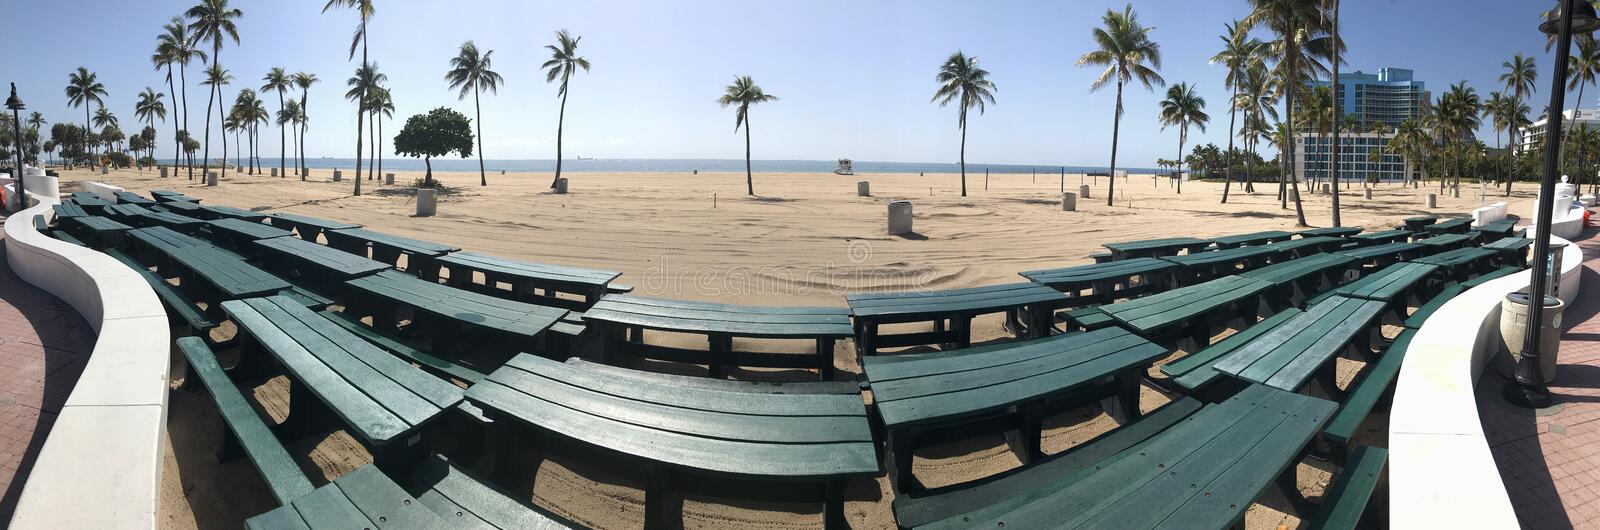 Panoramic View Shows Stacked Picnic Tables And Empty Florida Beach royalty free stock photo